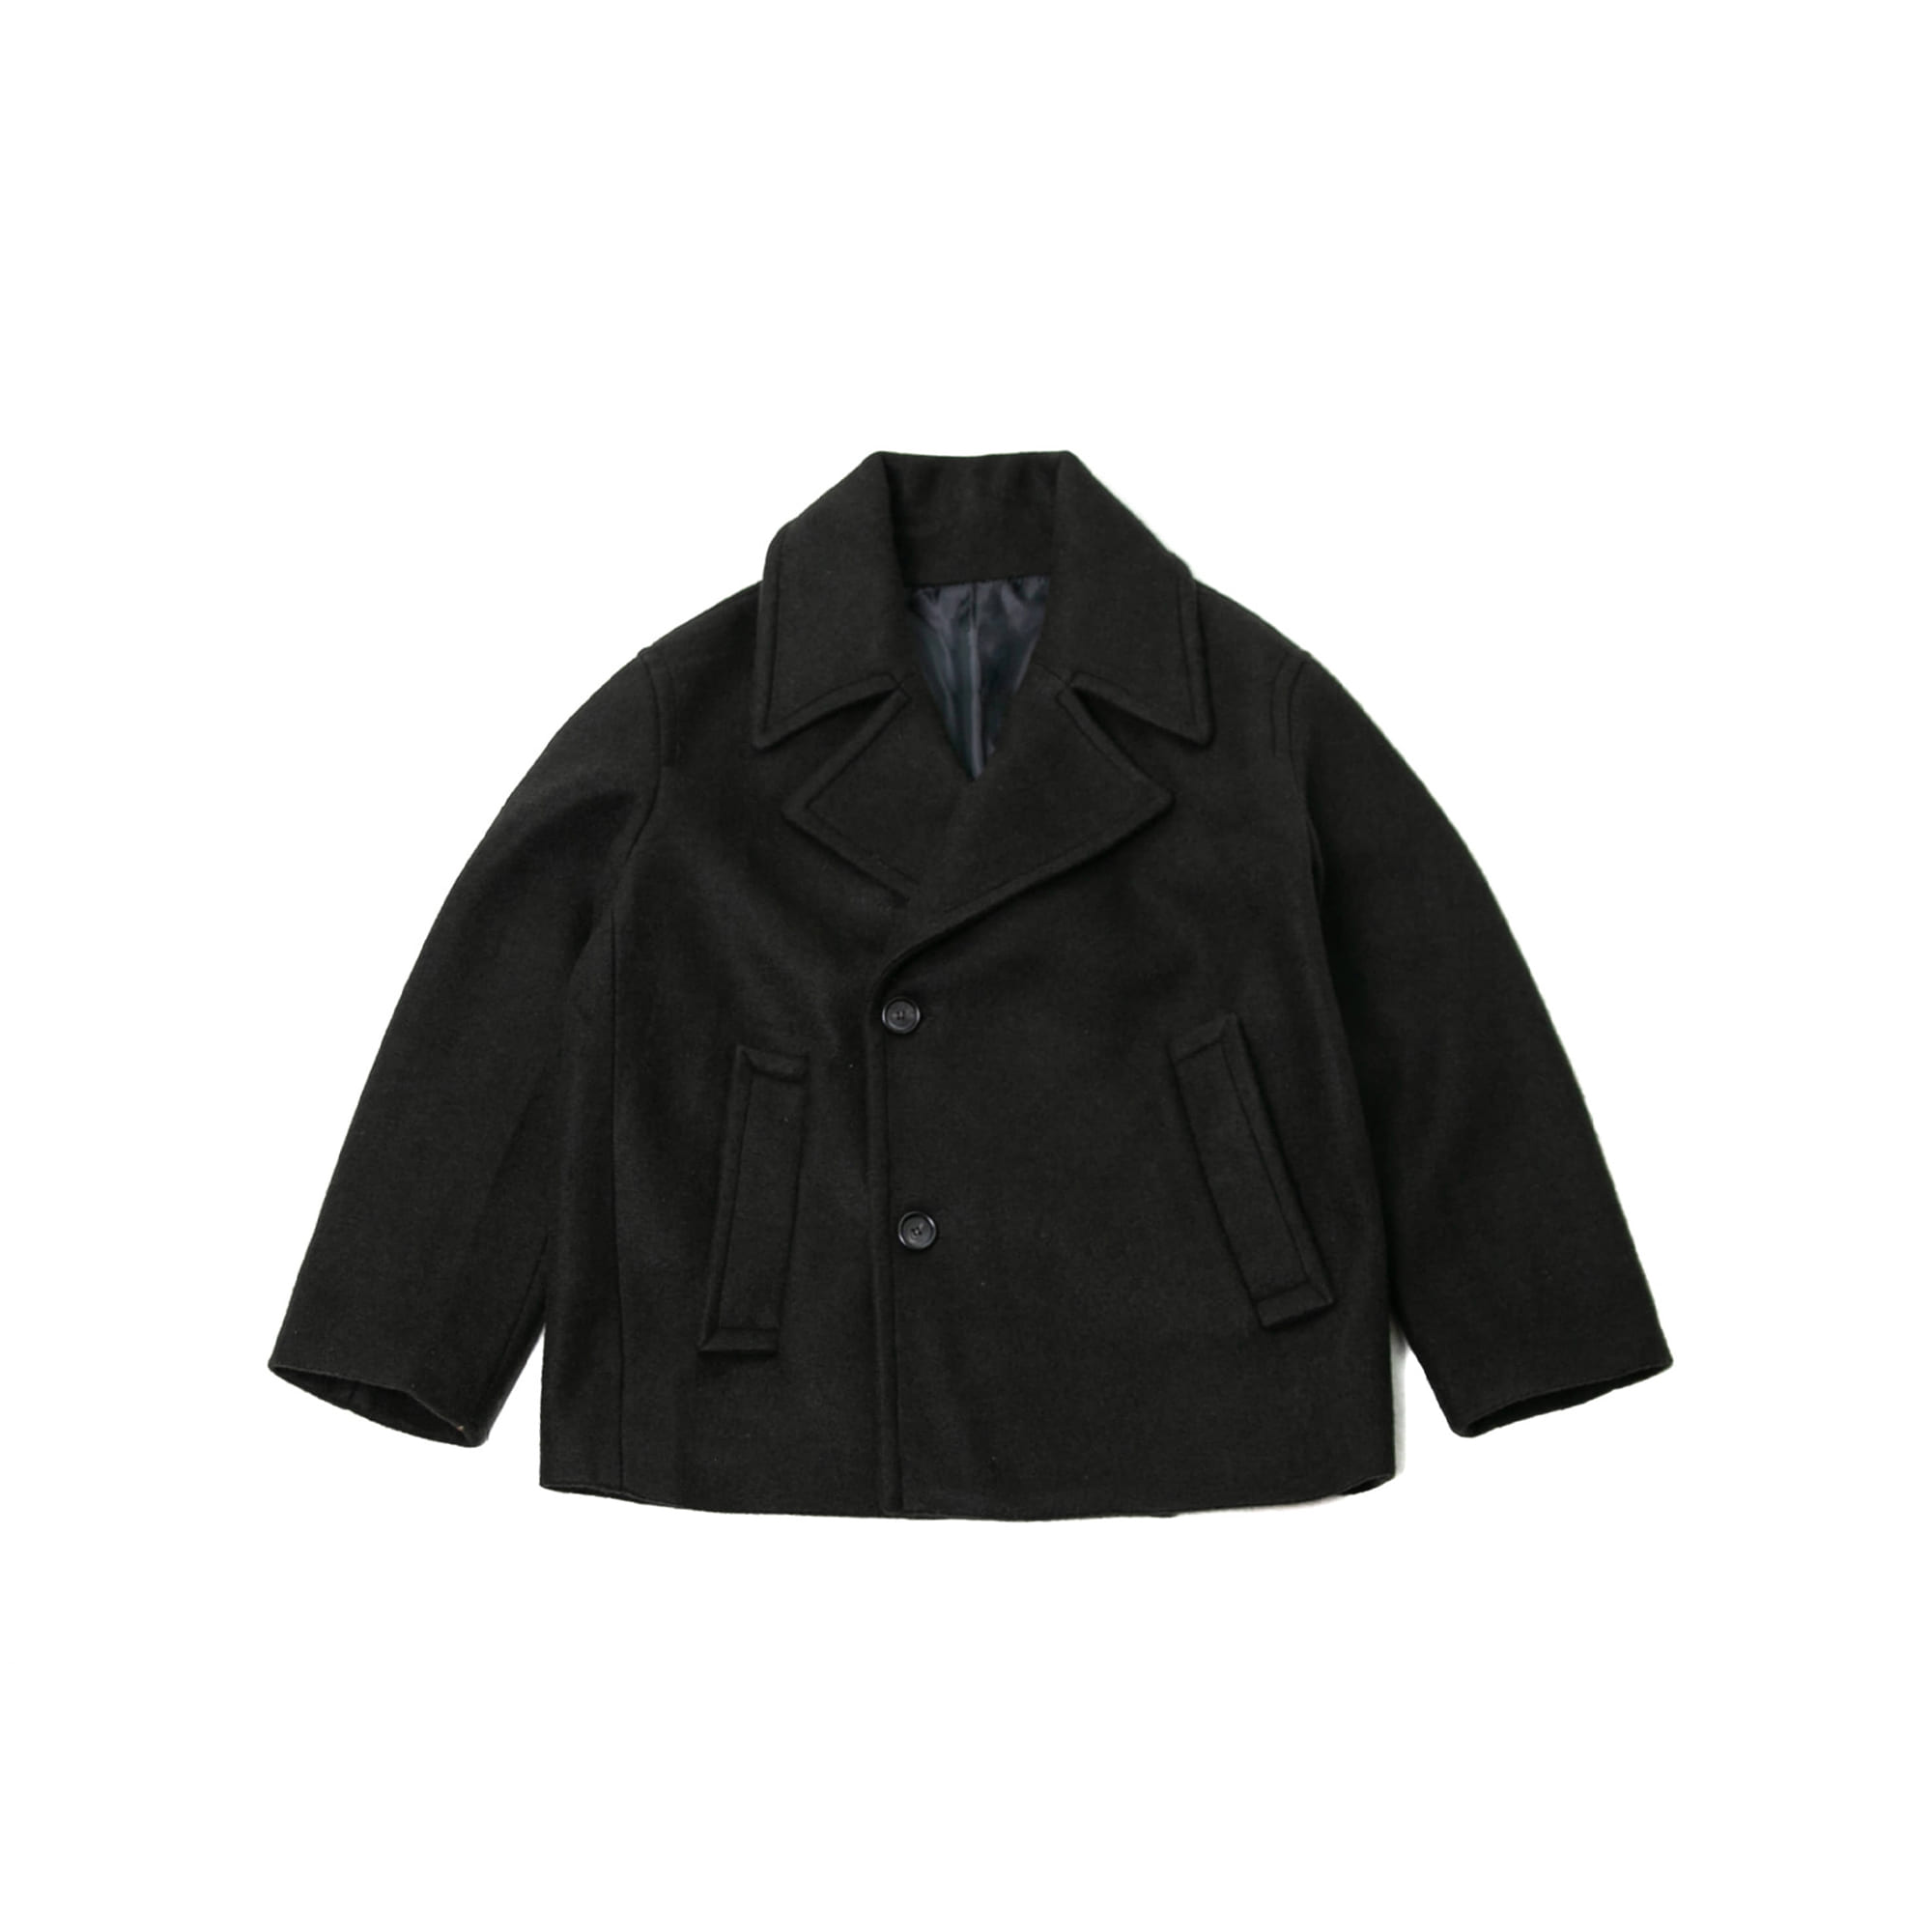 Double Breasted Wool Pea Coat - Black